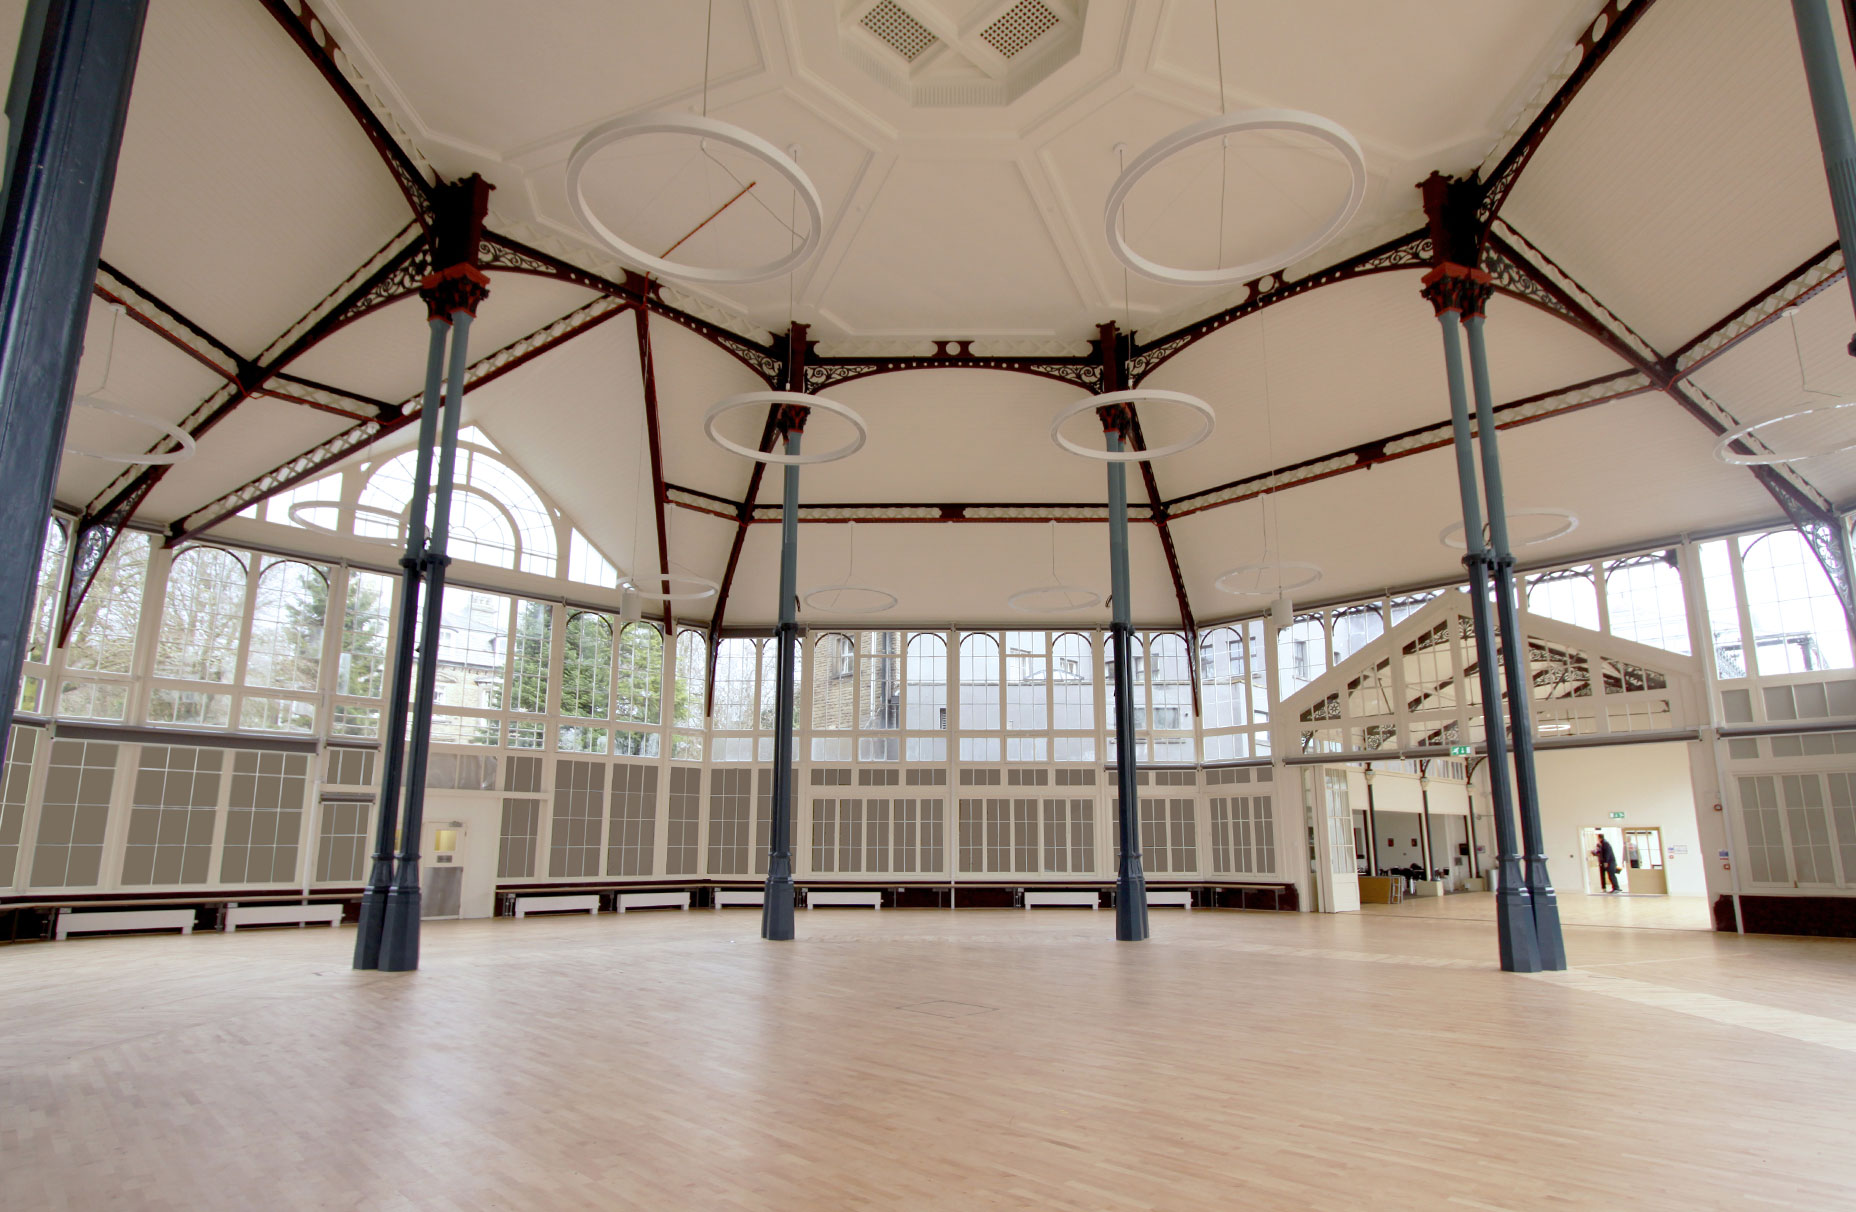 The Octagon - Pavilion Gardens - Concert Hall L8